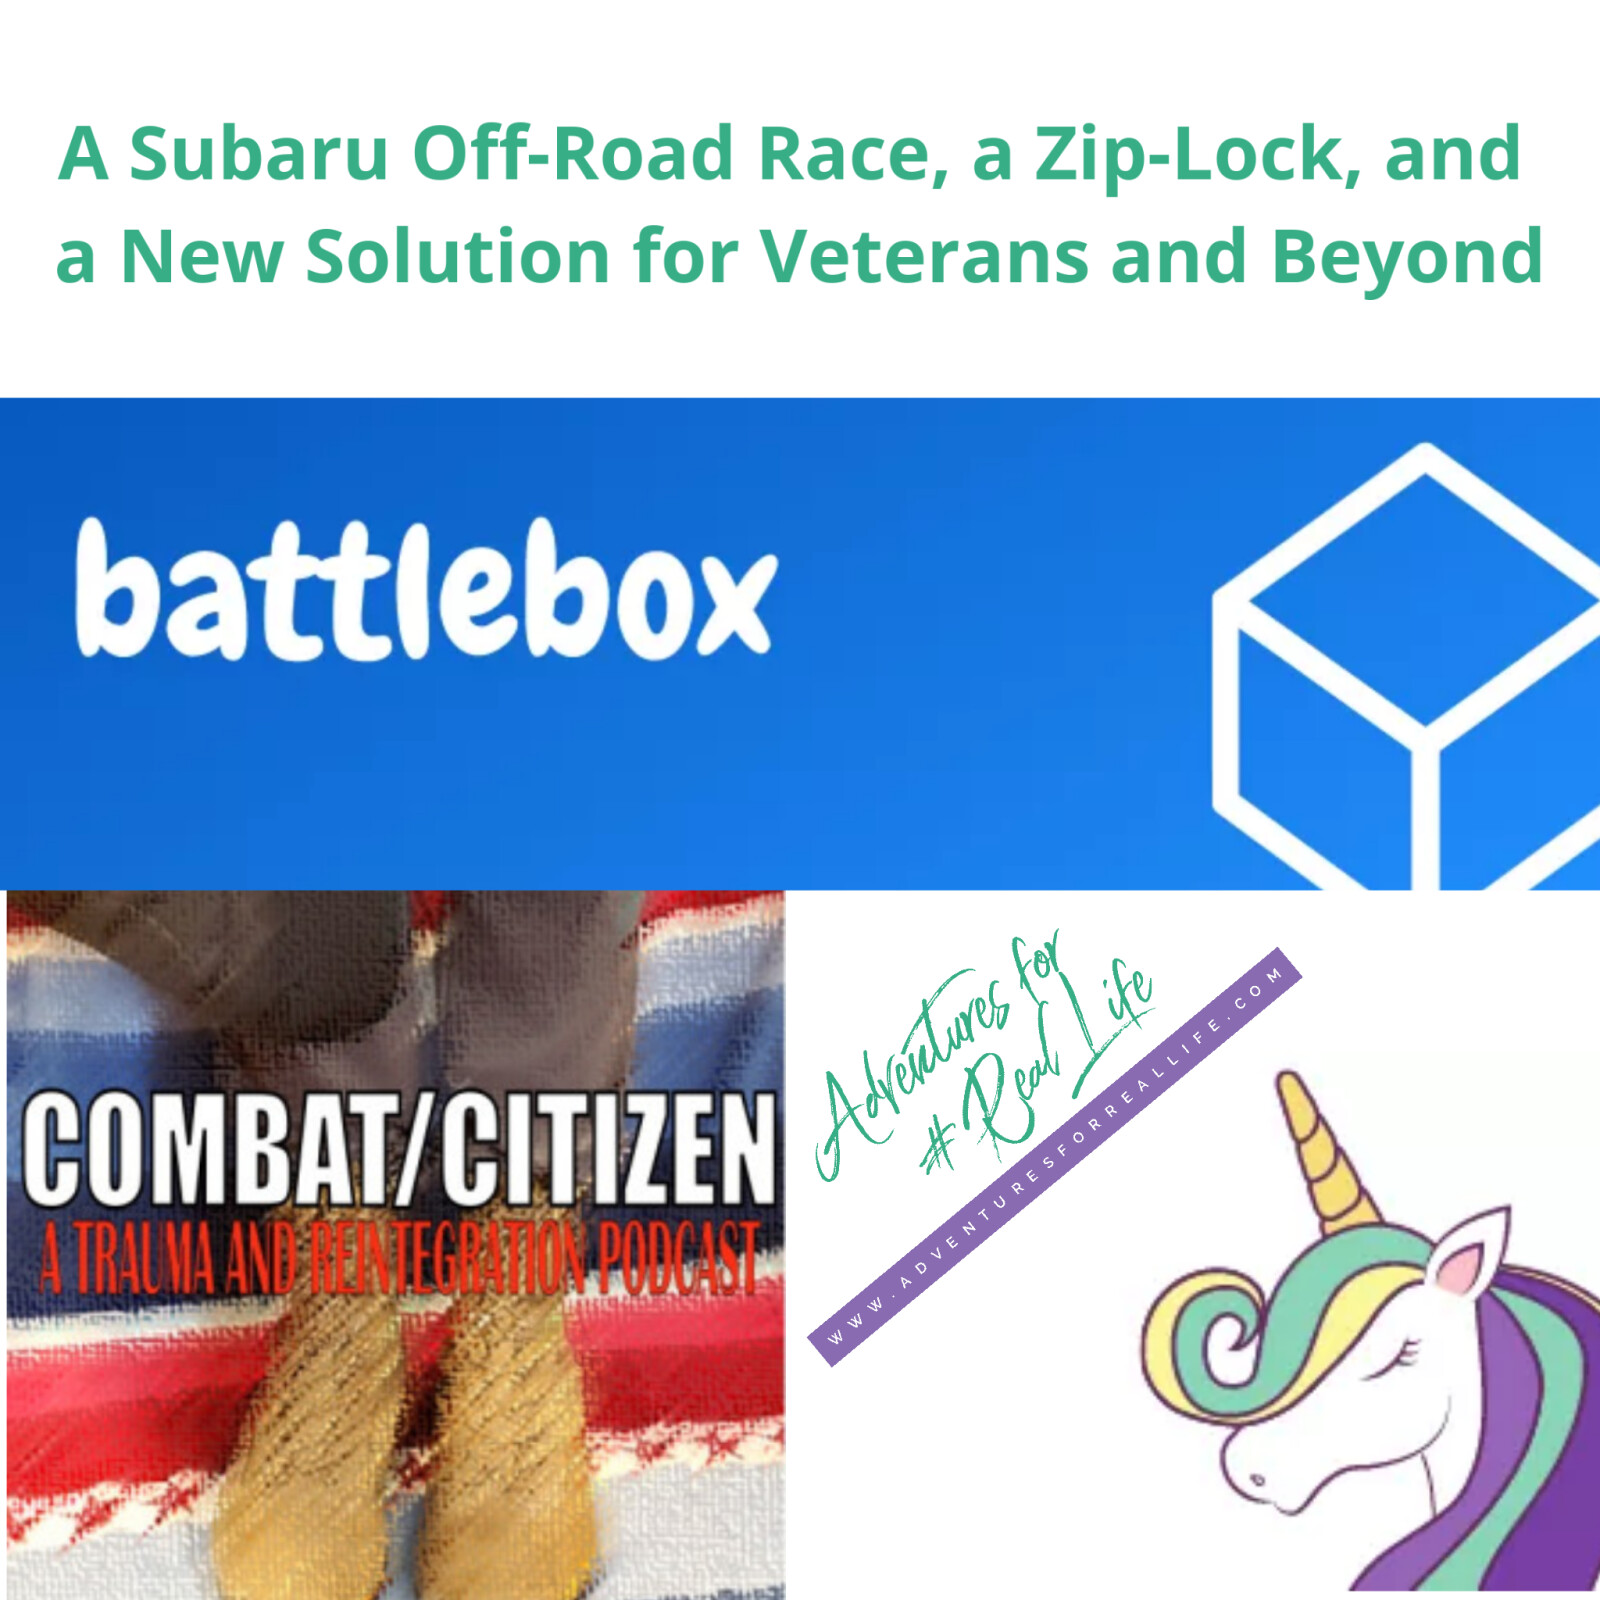 A Subaru Off-Road Race, a Zip-Lock, and a New Solution for Veterans and Beyond